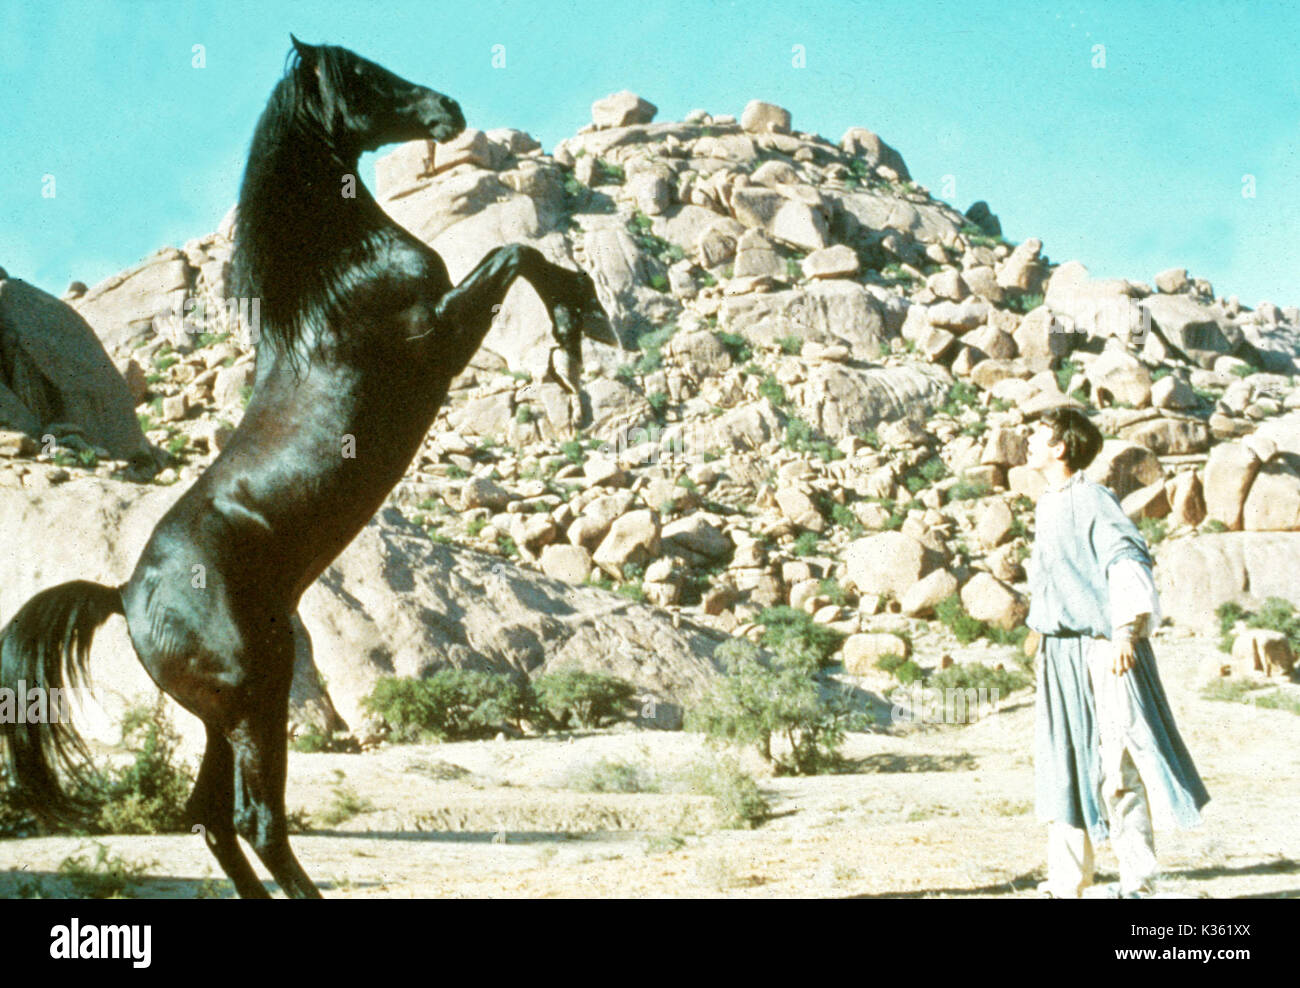 THE BLACK STALLION RETURNS Picture from the Ronald Grant Archive THE BLACK STALLION RETURNS      Date: 1983 - Stock Image